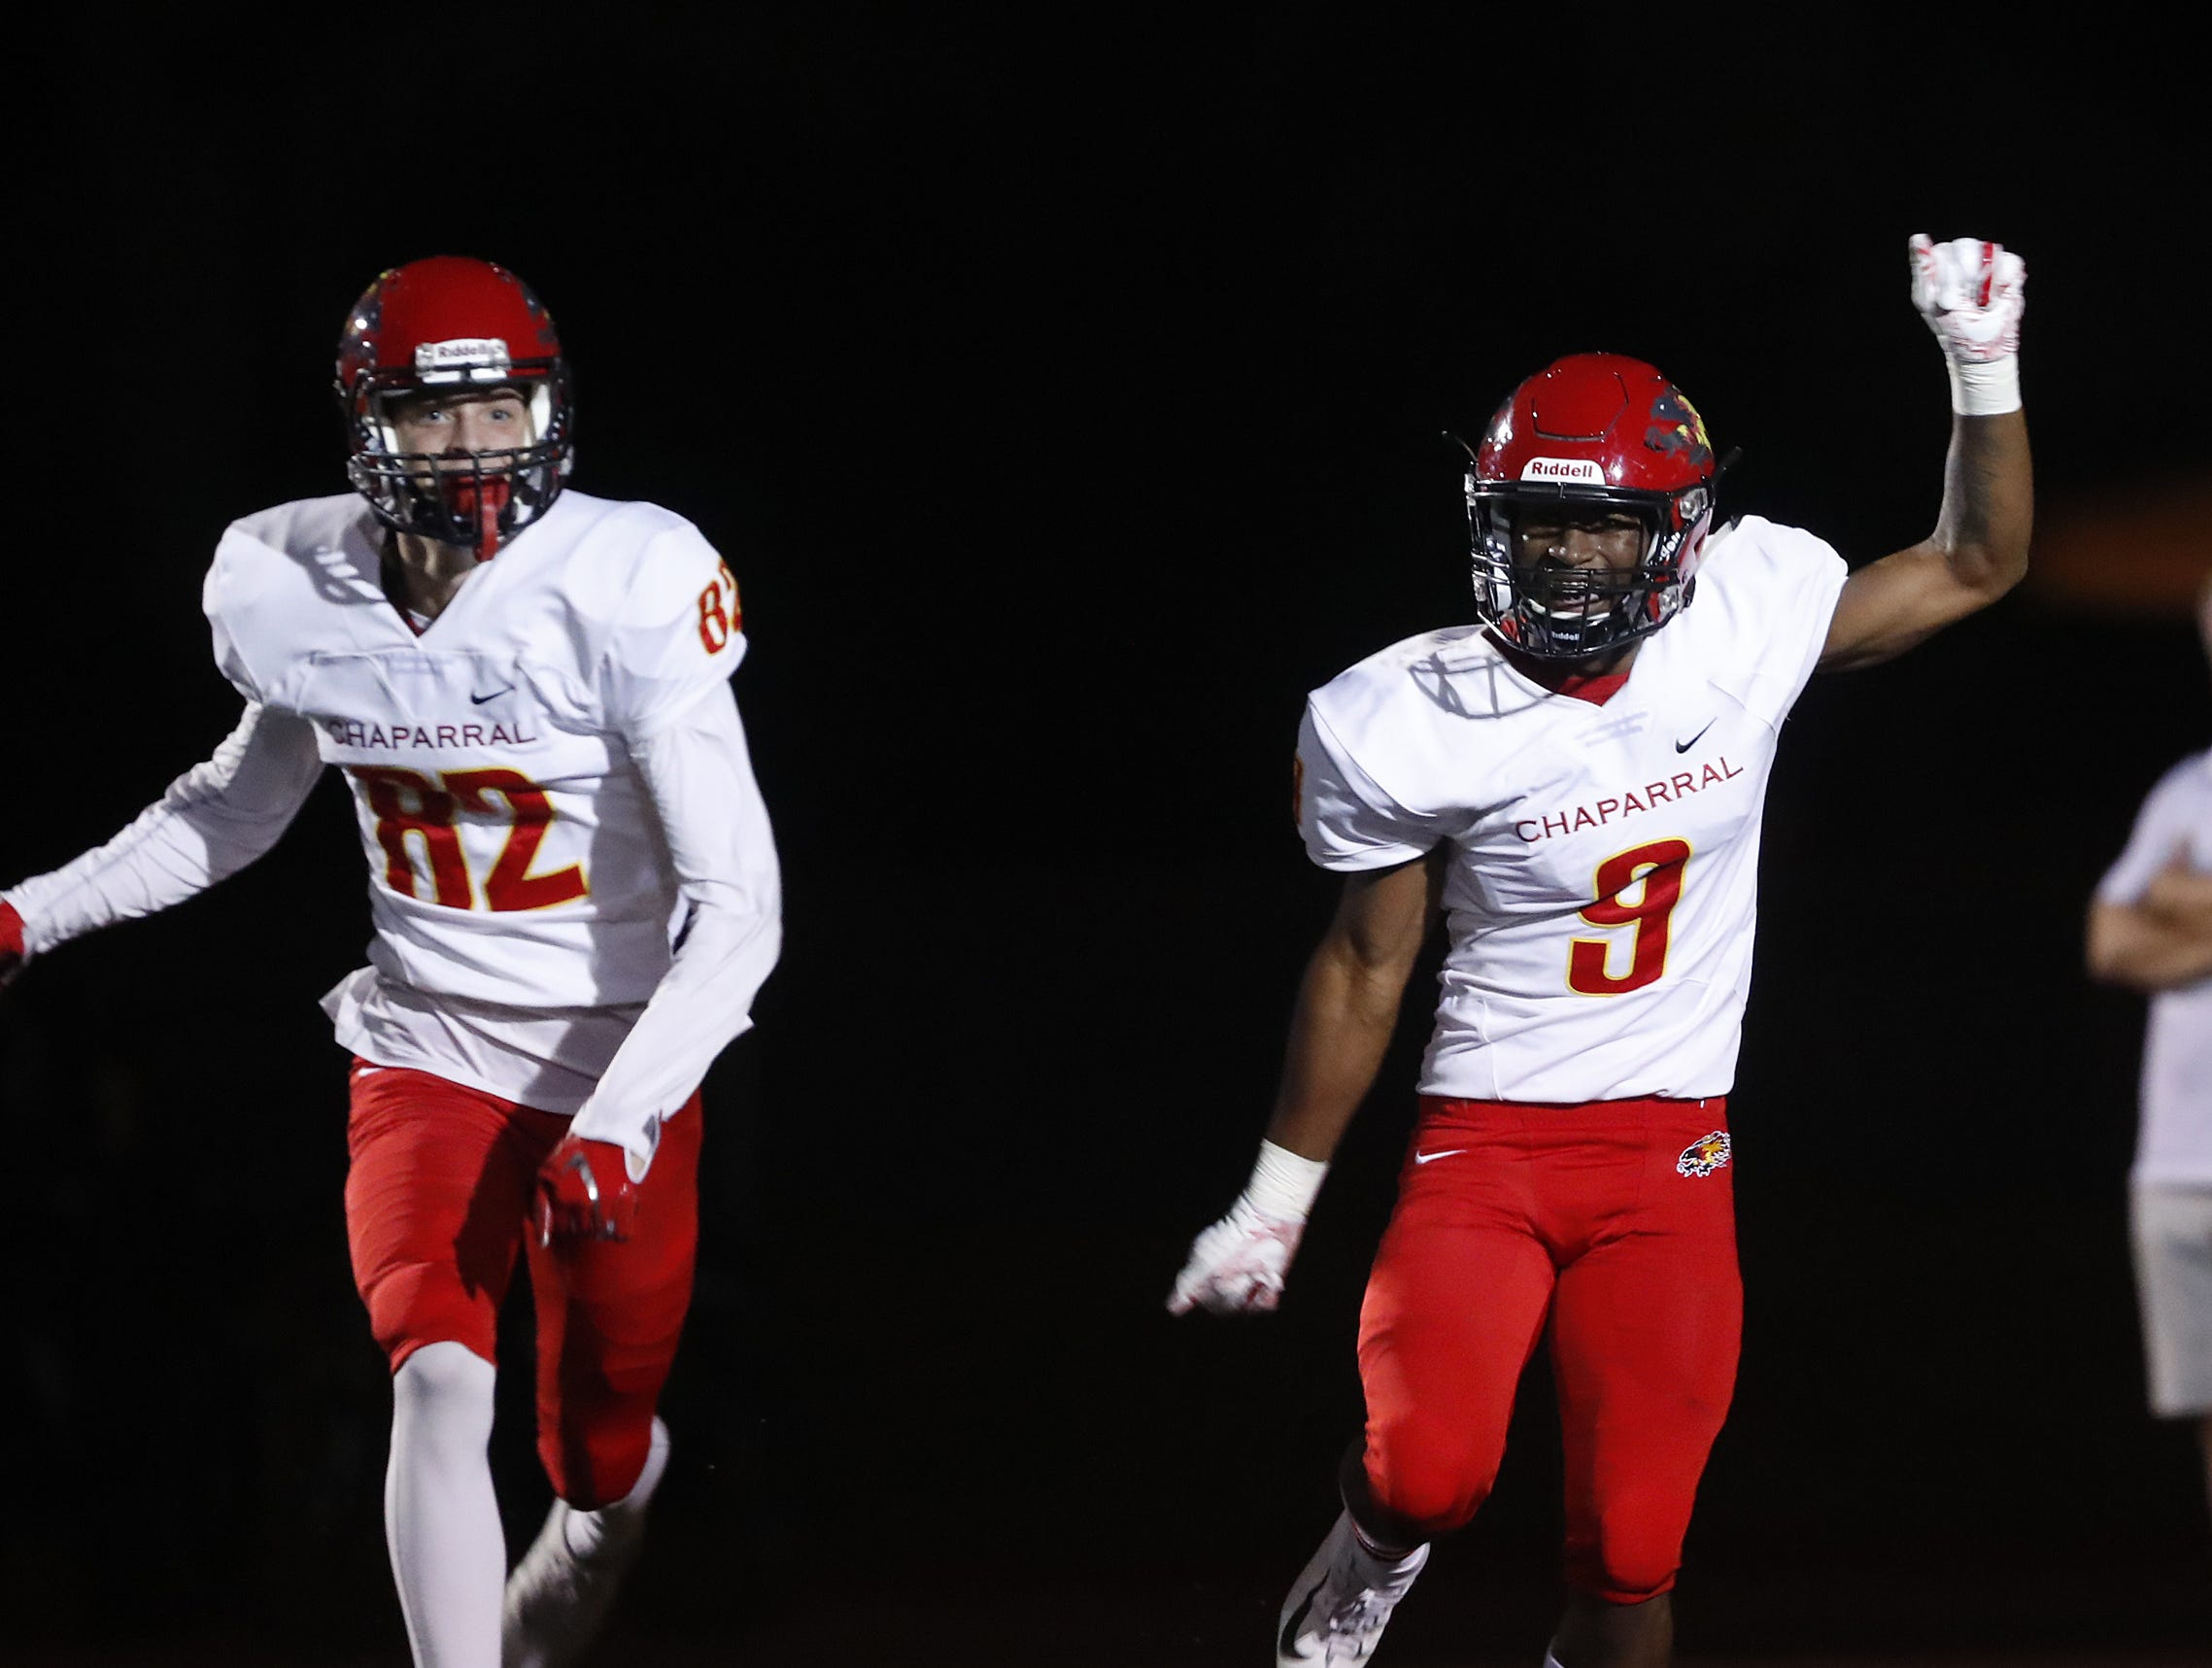 Chaparral's Deavon Crawford (9) celebrates a touchdown against Saguaro during the first half at Saguaro High School in Scottsdale, Ariz. on Sept. 14, 2018.